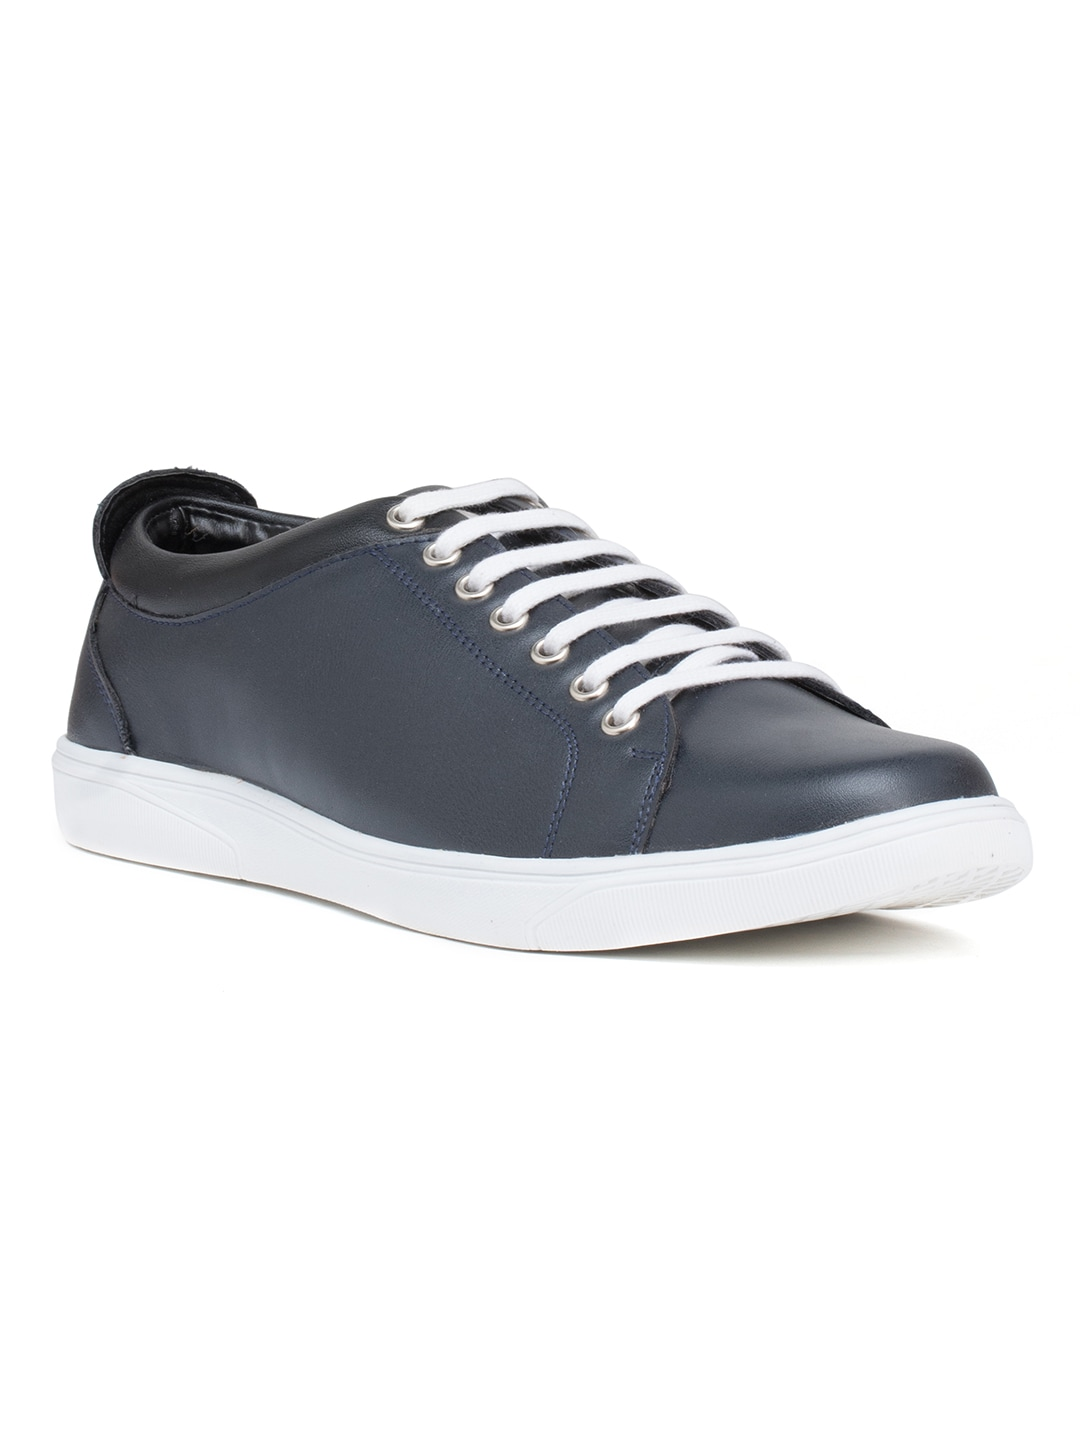 Navy Blue Blue Sneakers Casual Shoes - Buy Navy Blue Blue Sneakers Casual  Shoes online in India b8c58afb945